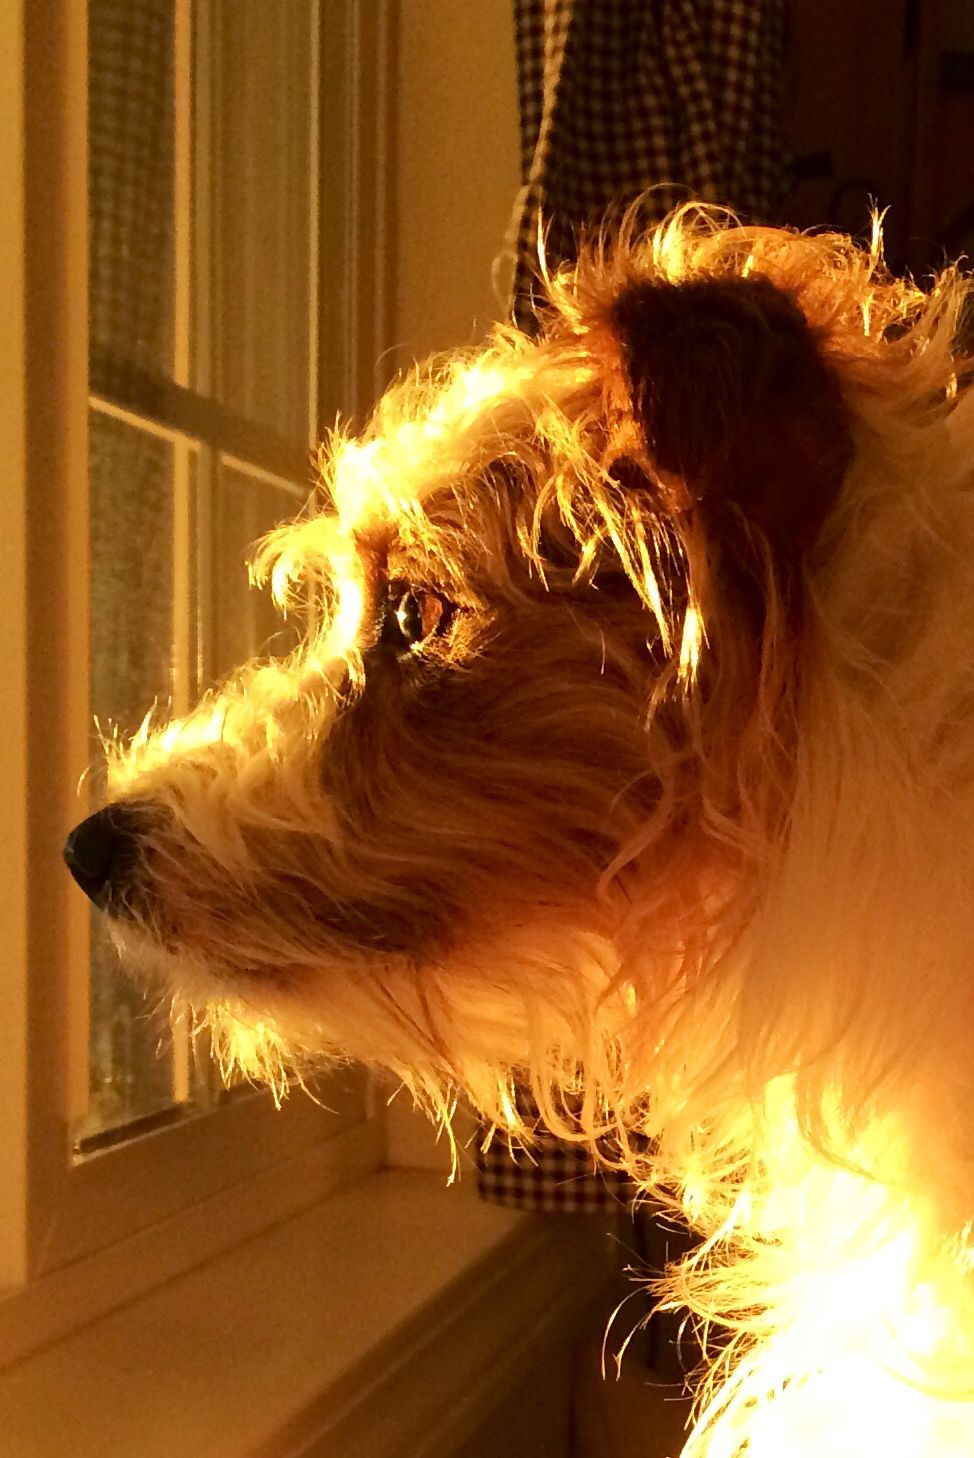 Daisy watching the sun go down! Jack russell